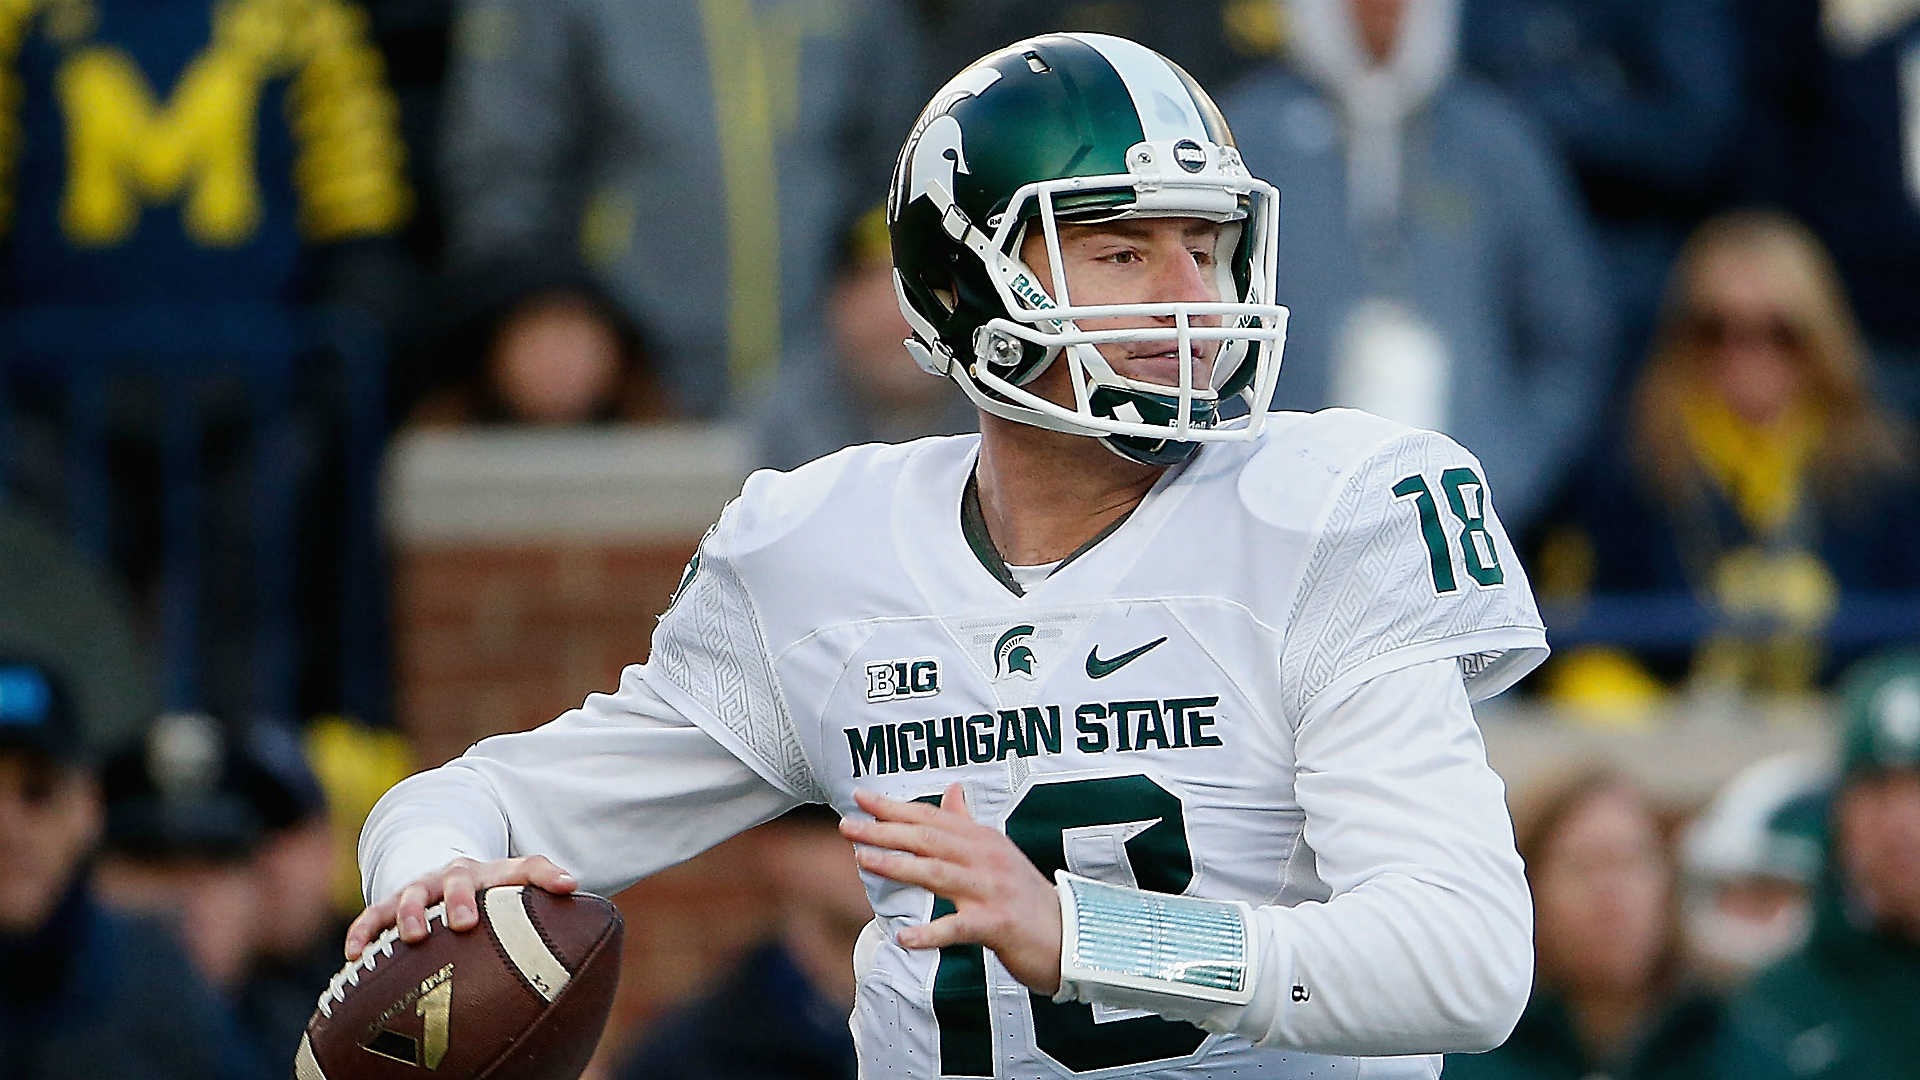 Penn State at Michigan State betting line and pick — Sparty boasting double digits